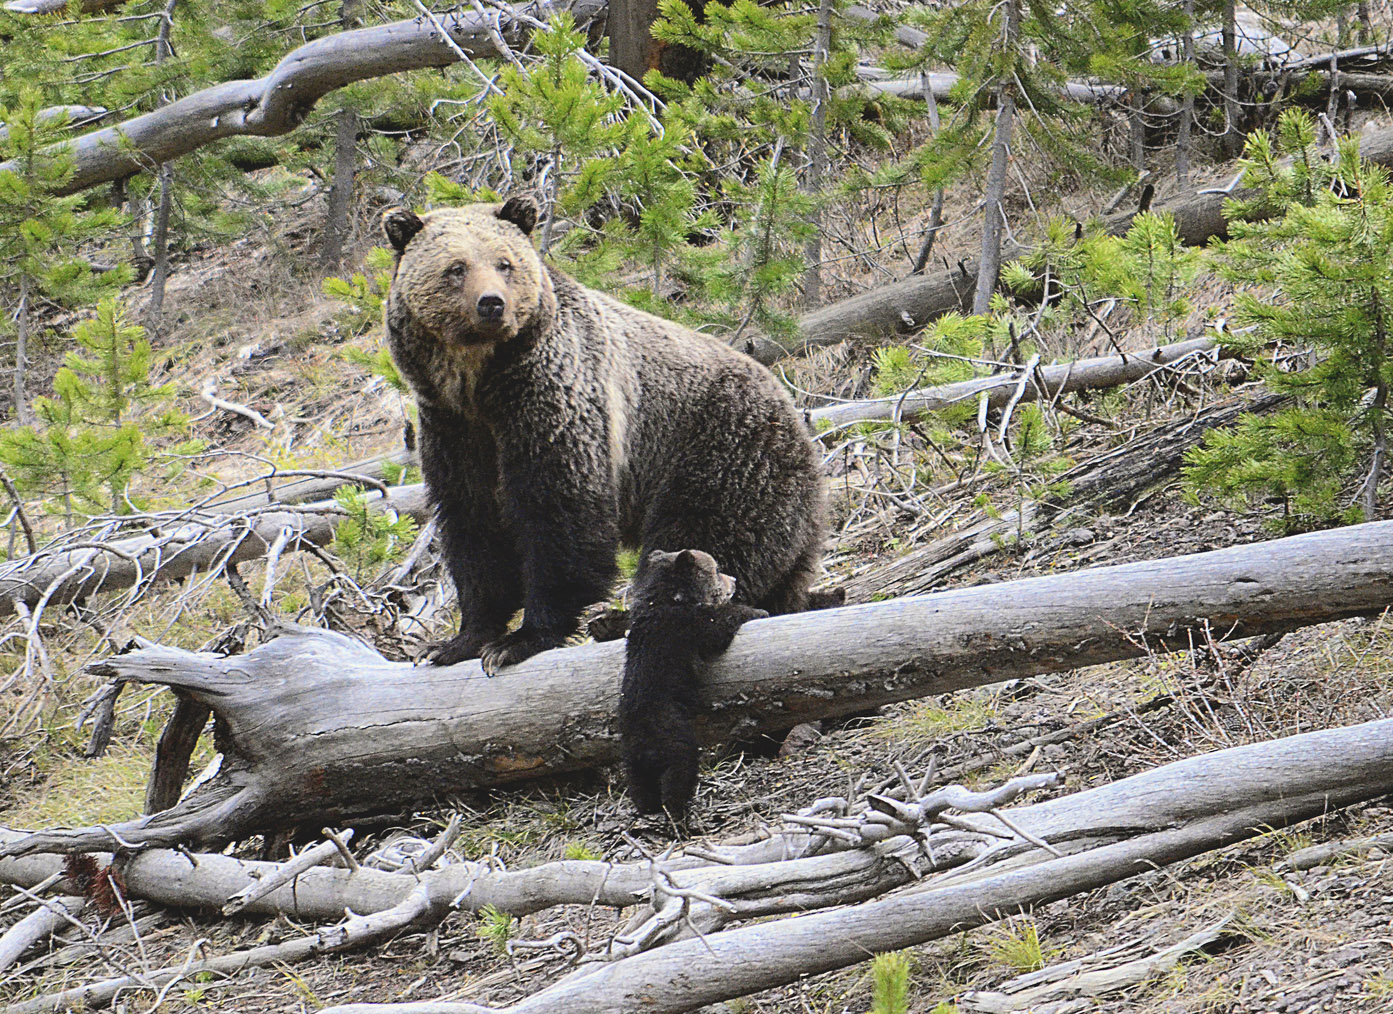 Environmentalists Group Wants Grizzly Bears Restored To